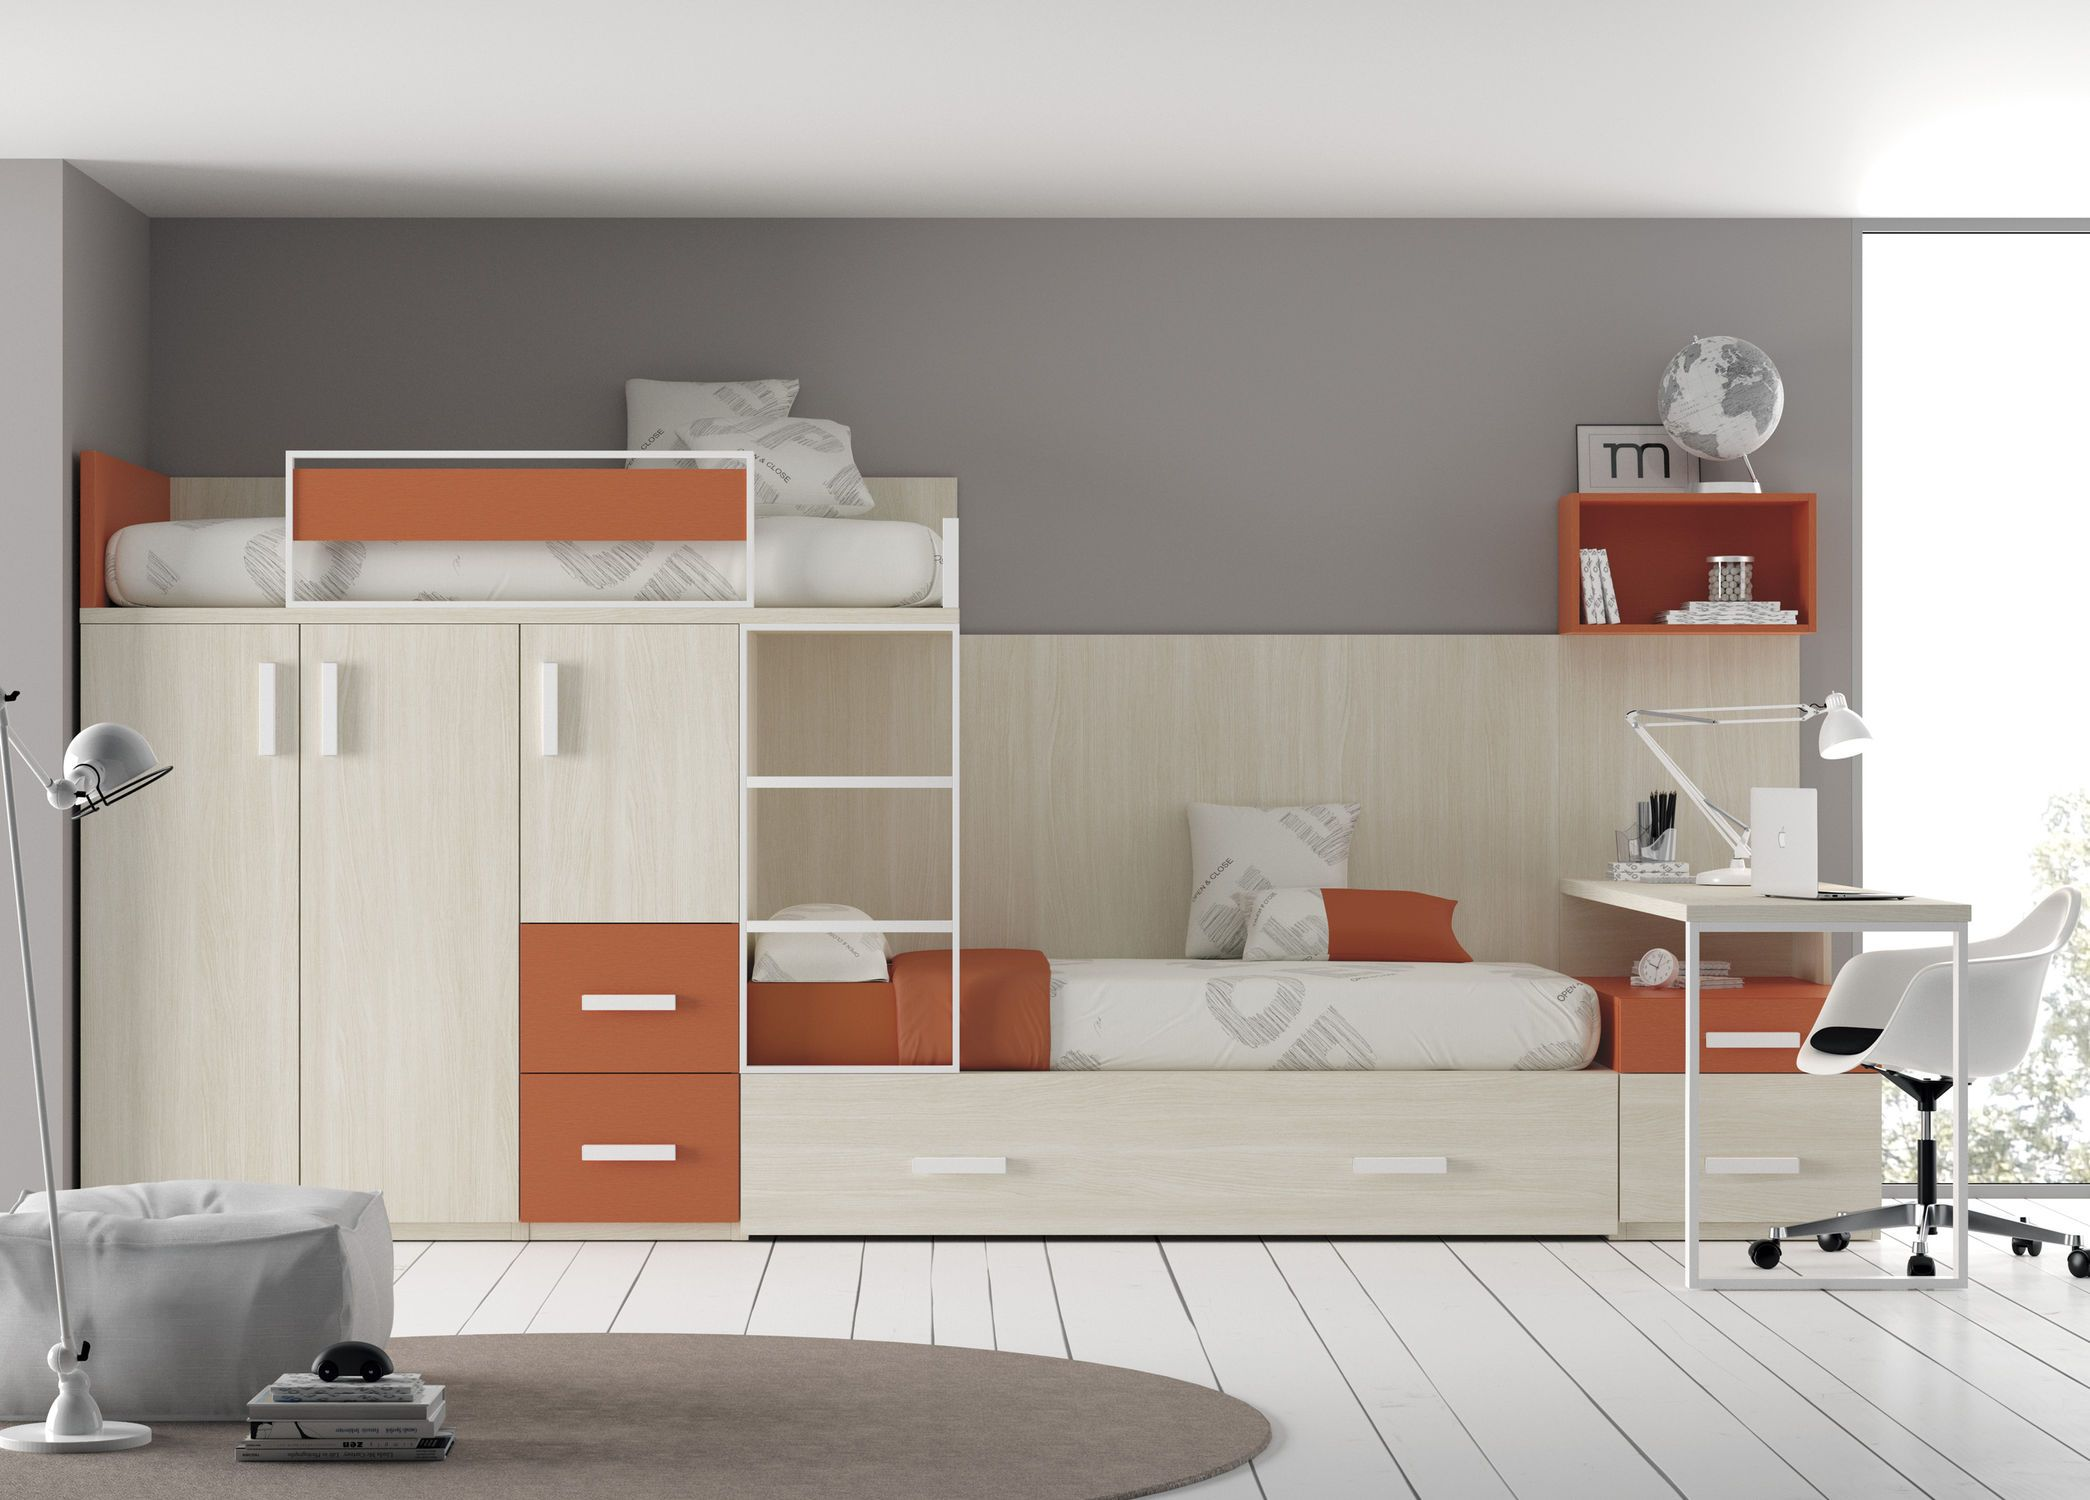 lit superpos avec rangements pour enfant fille touch 51 ros 1 sa lit superpos. Black Bedroom Furniture Sets. Home Design Ideas